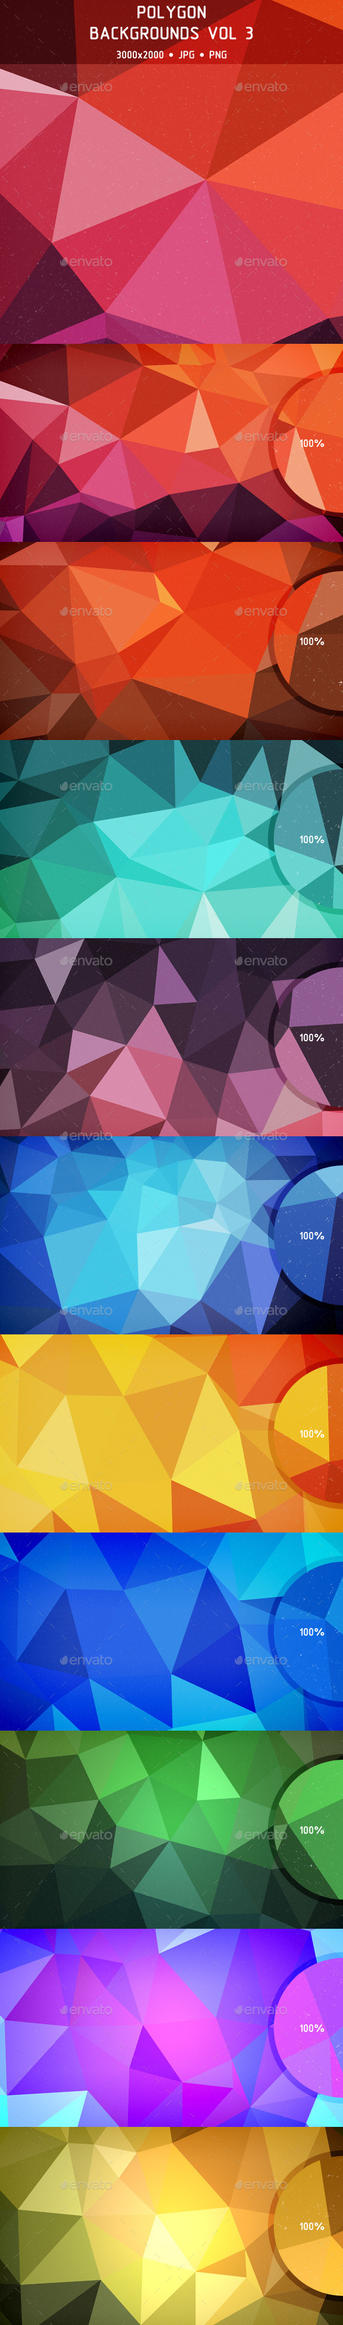 Polygon Backgrounds Vol 3 (Preview) by Cooltype-GR